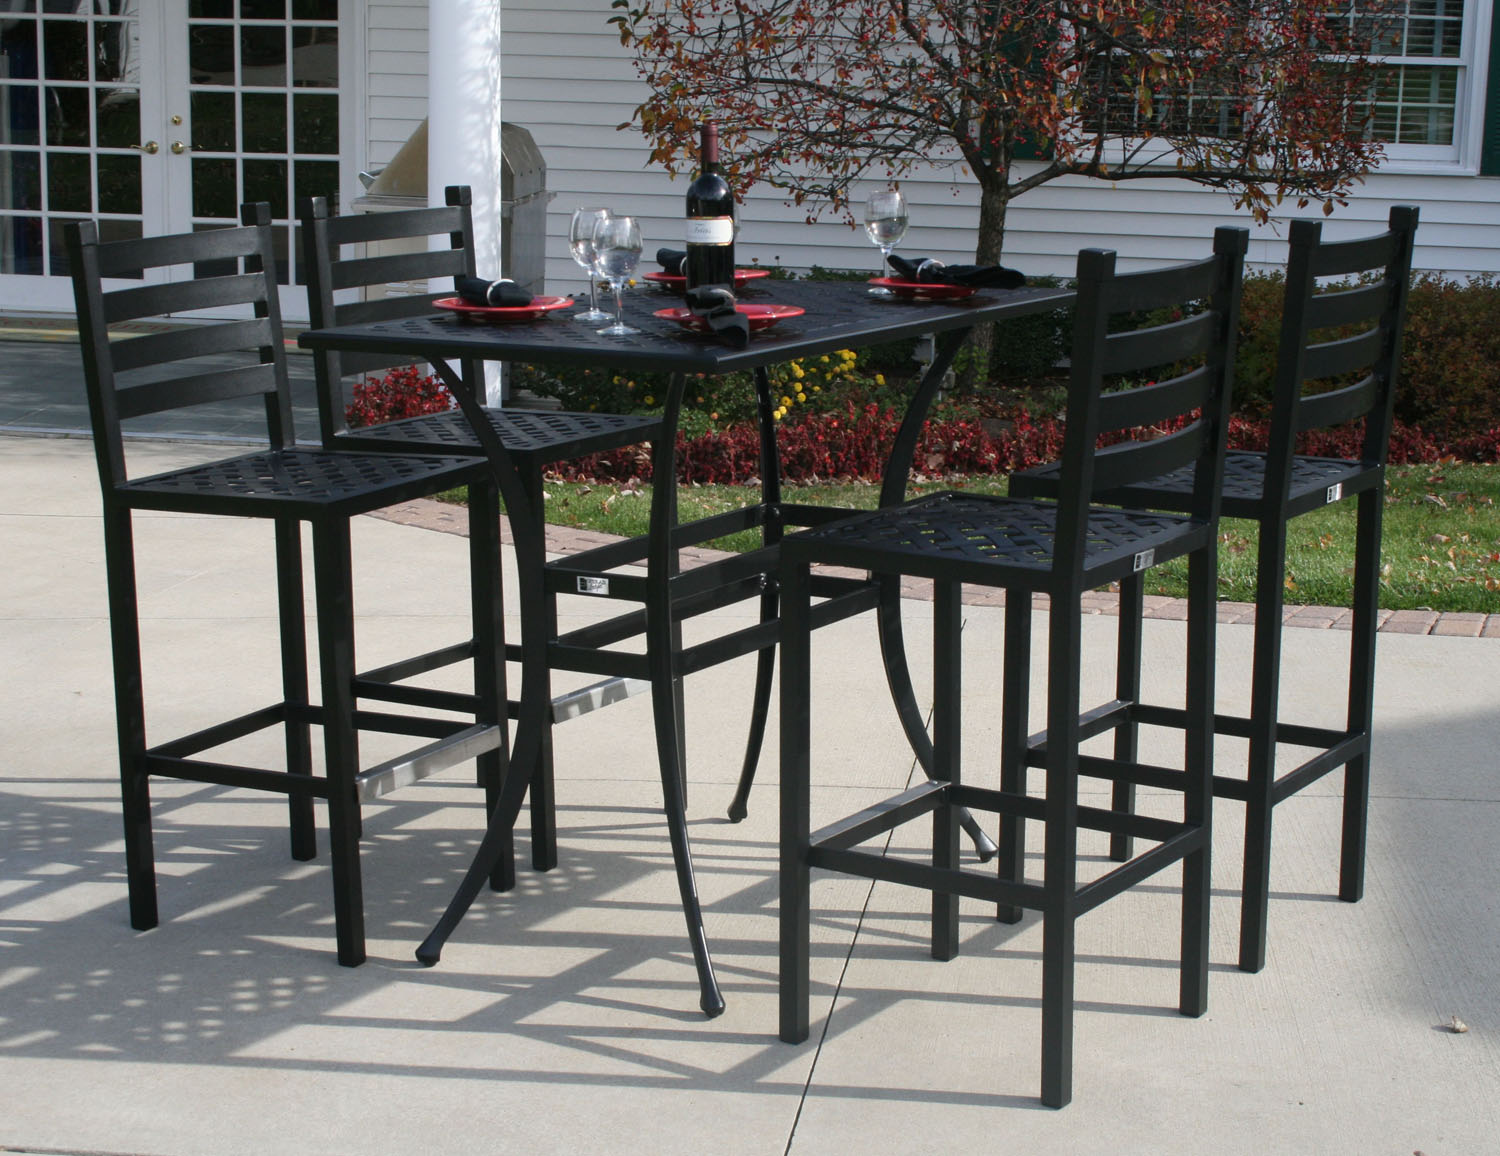 del top high furniture set bar size and lowes hampton bay end outdoor sets rey chairs coral coast large tall patio table dining balcony height westbury